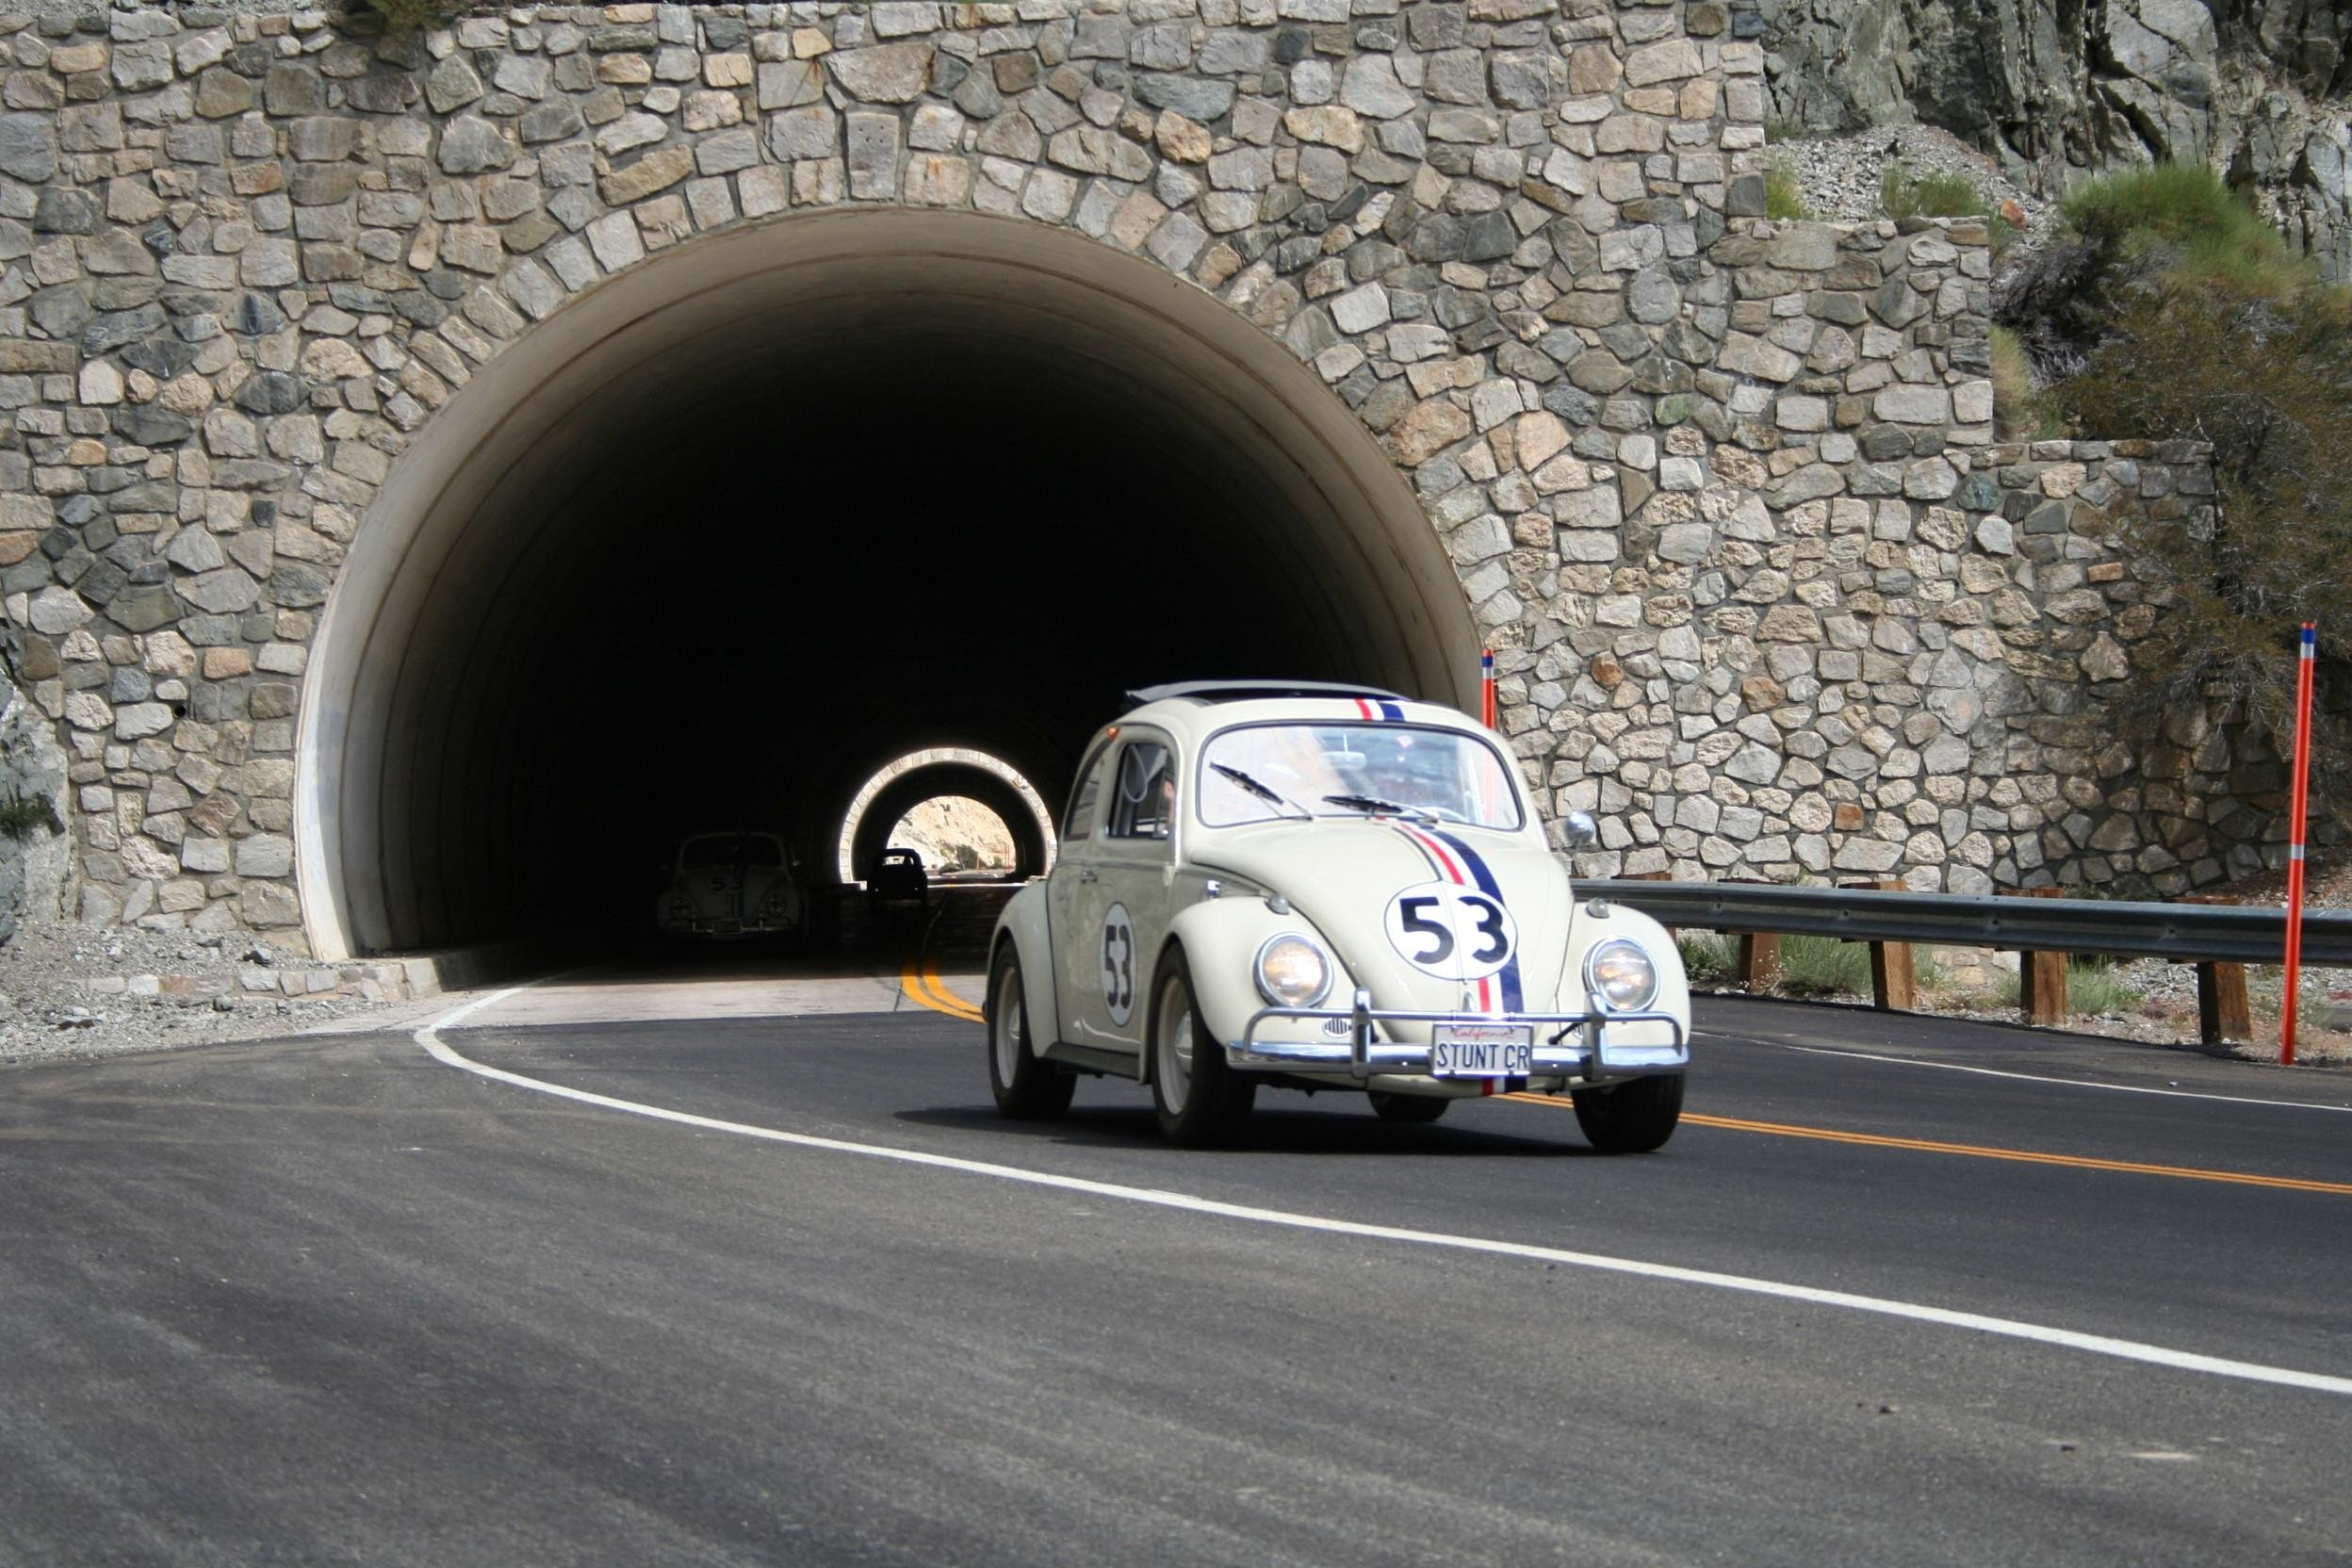 Res: 2496x1664, VOLKSWAGON BEETLE bug custom herbie race racing wallpaper |  |  781996 | WallpaperUP